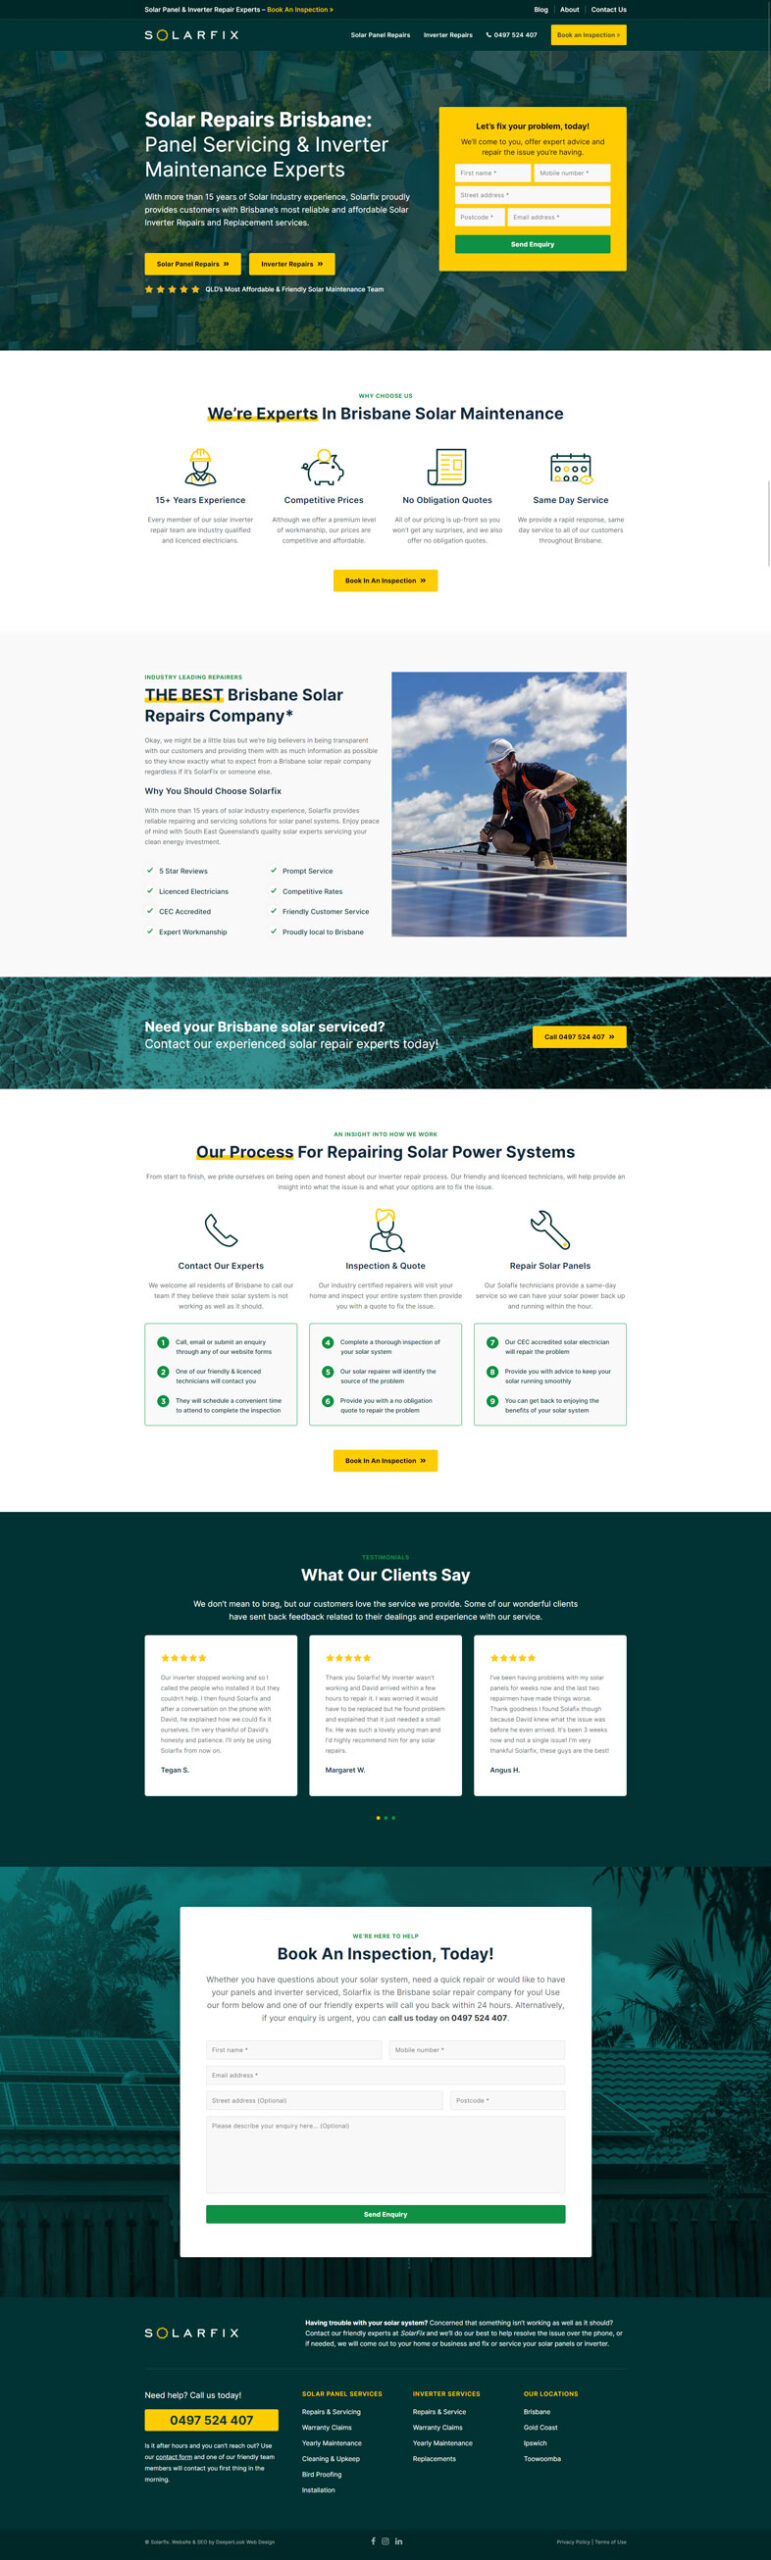 Solarfix's website design of the homepage